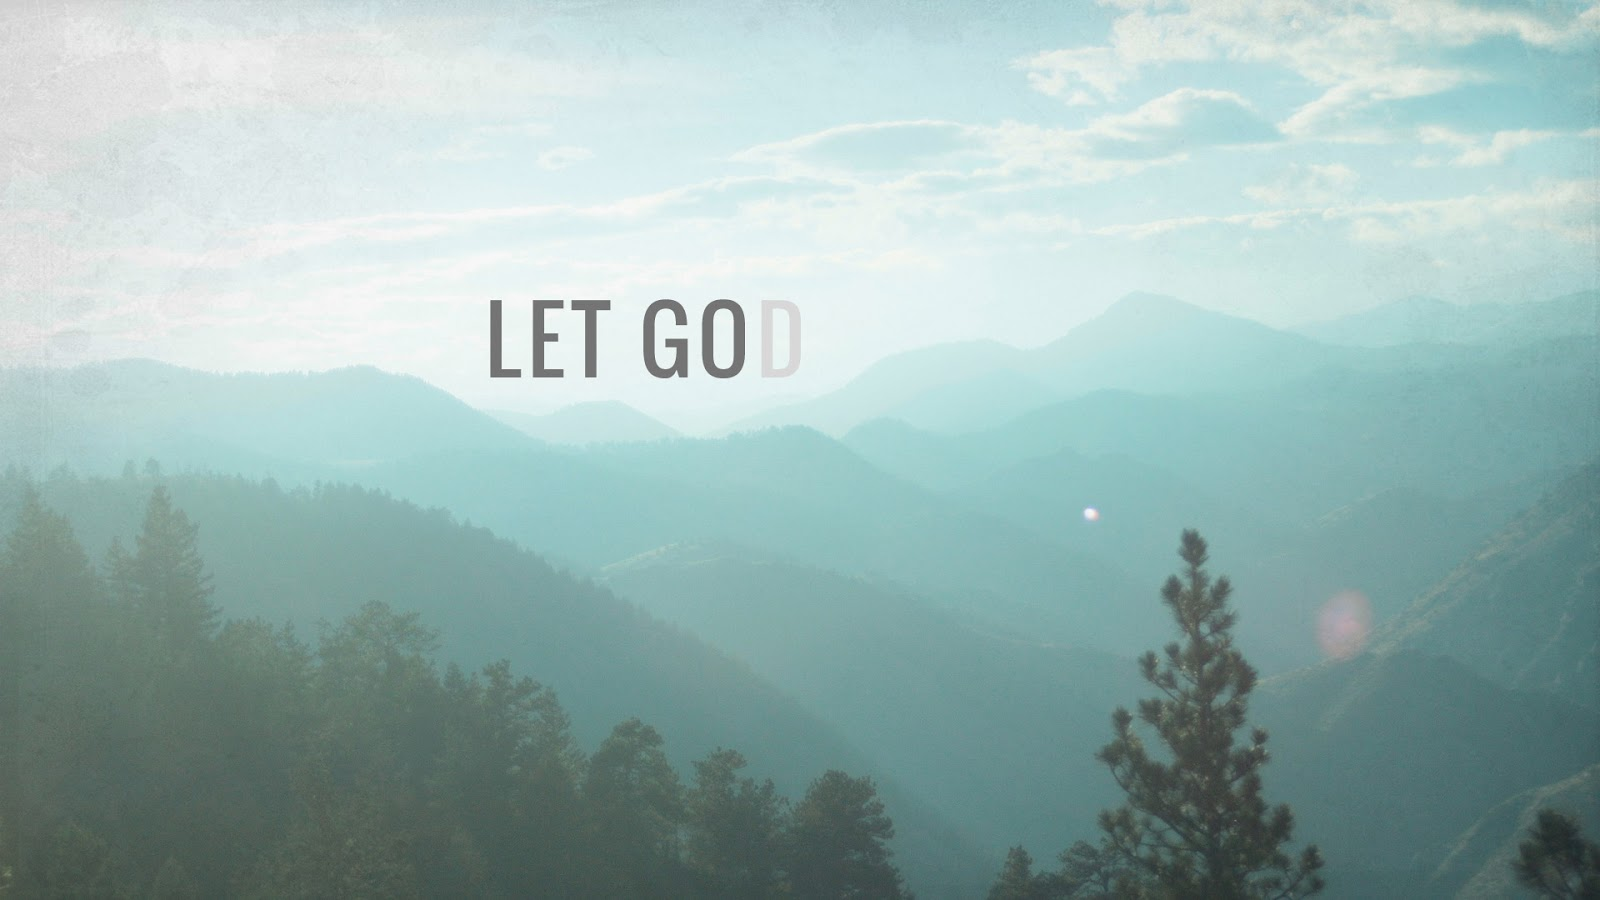 let go: